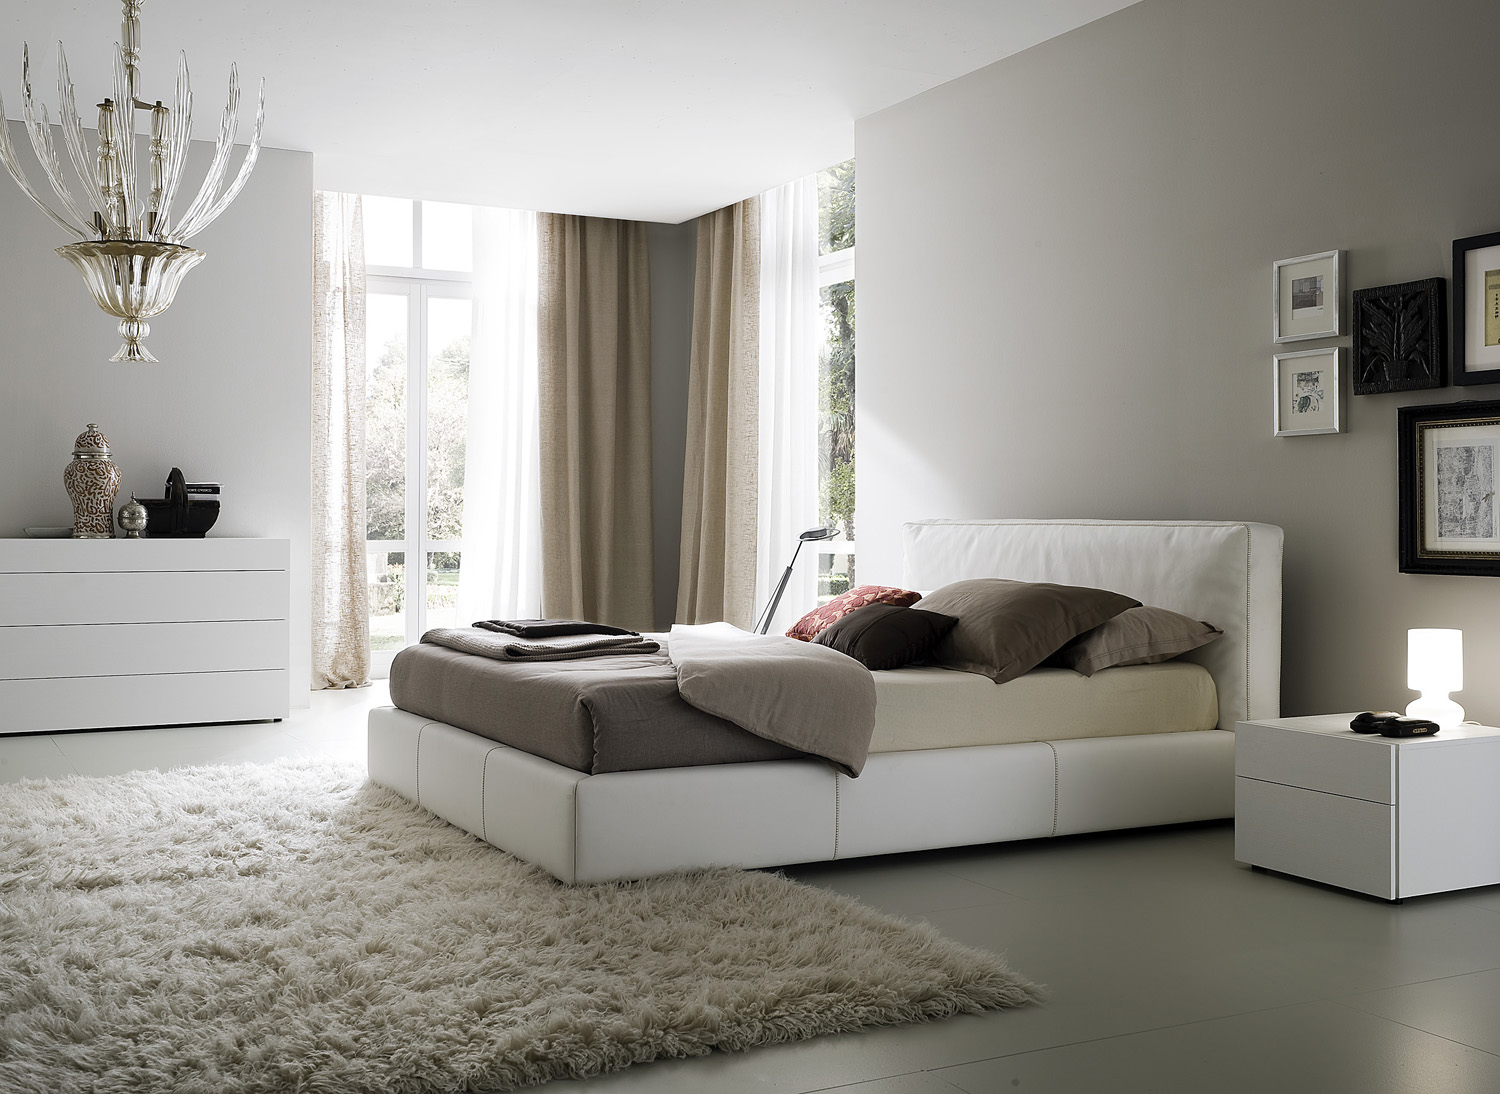 Bedroom decorating ideas from evinco for New bedroom designs pictures